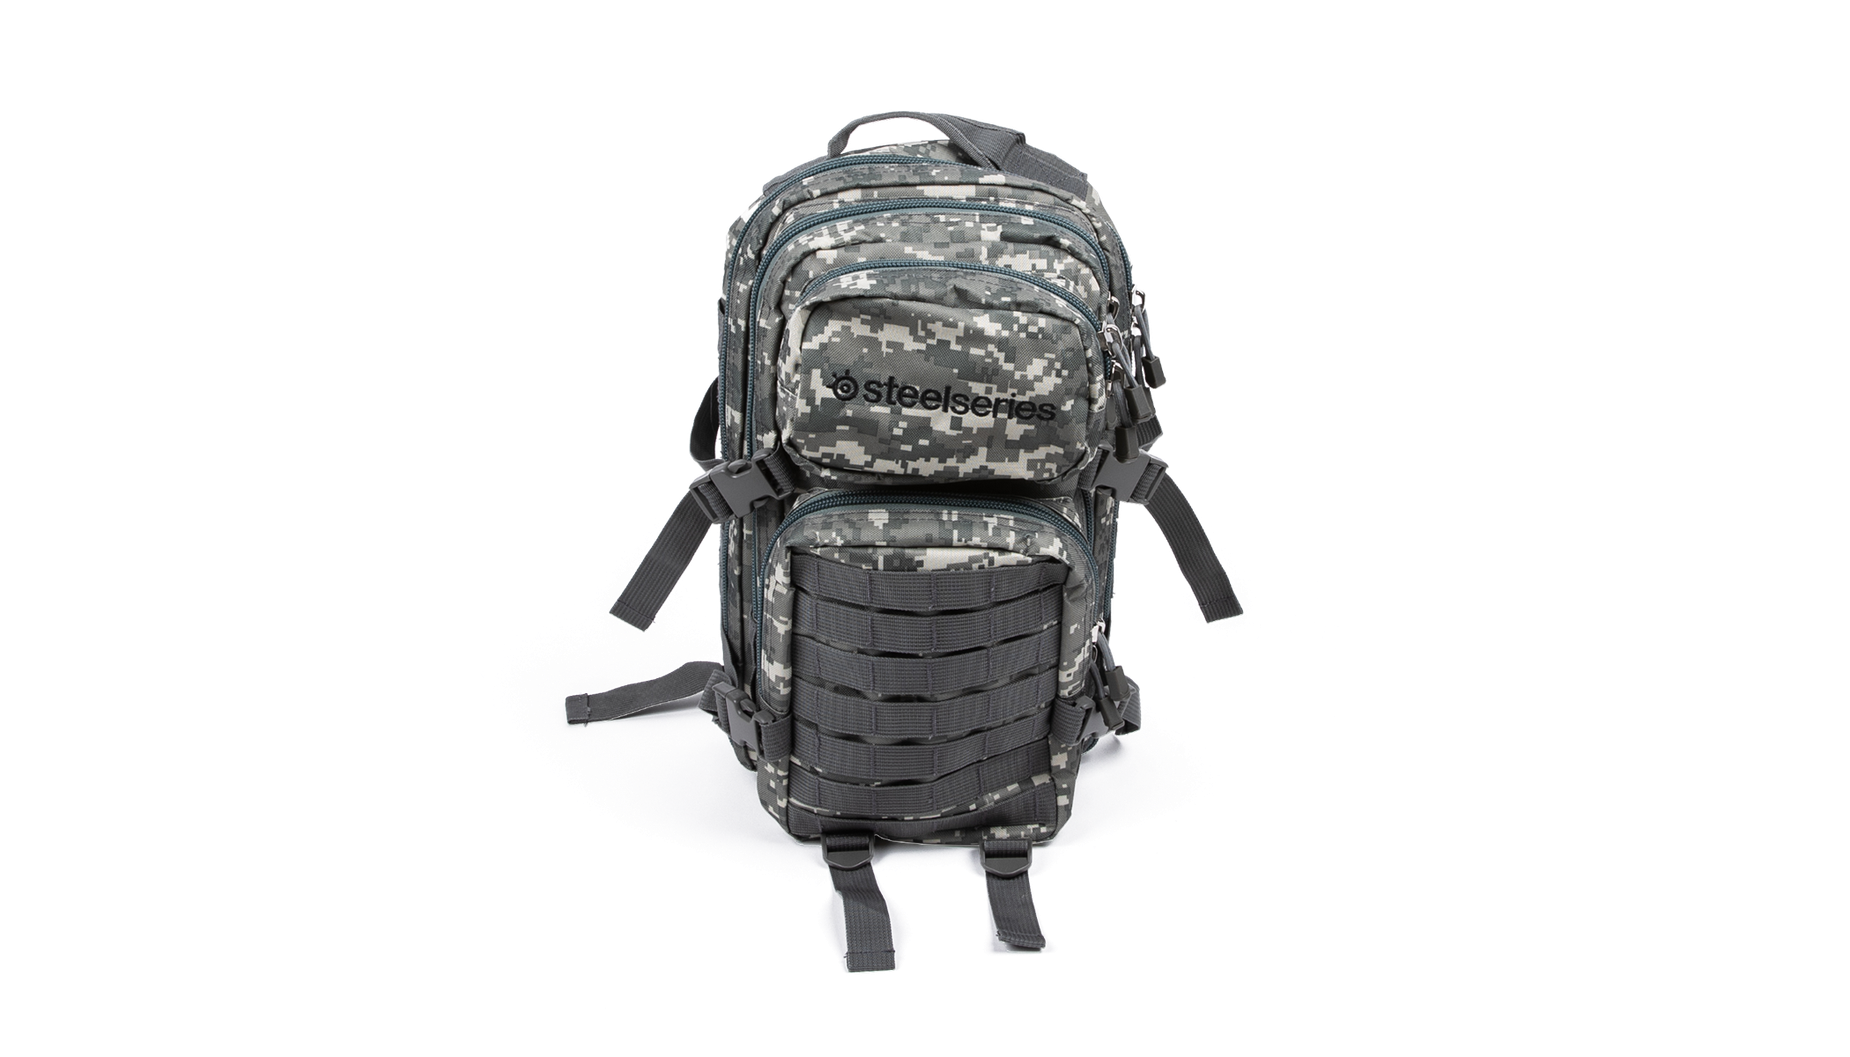 Military themed camo backpack viewed from behind